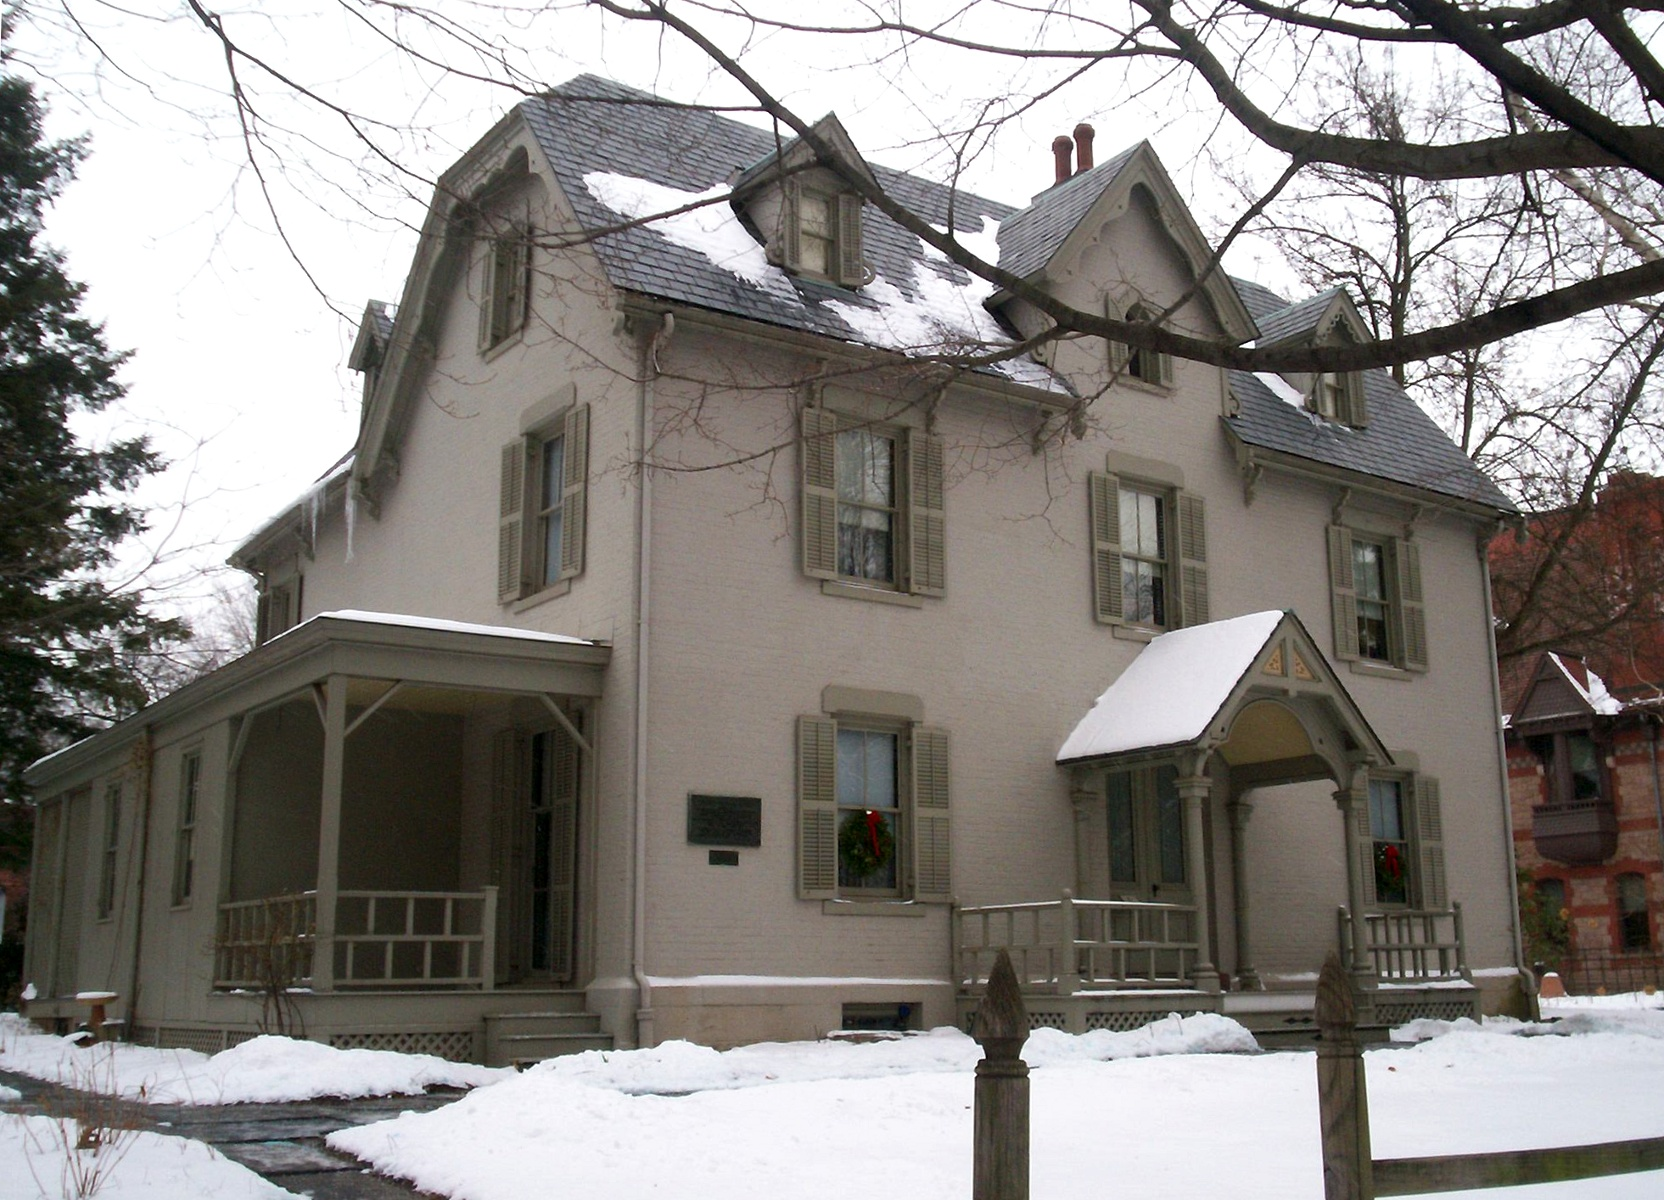 Harriet beecher stowe house hartford connecticut wikiwand for The hartford house